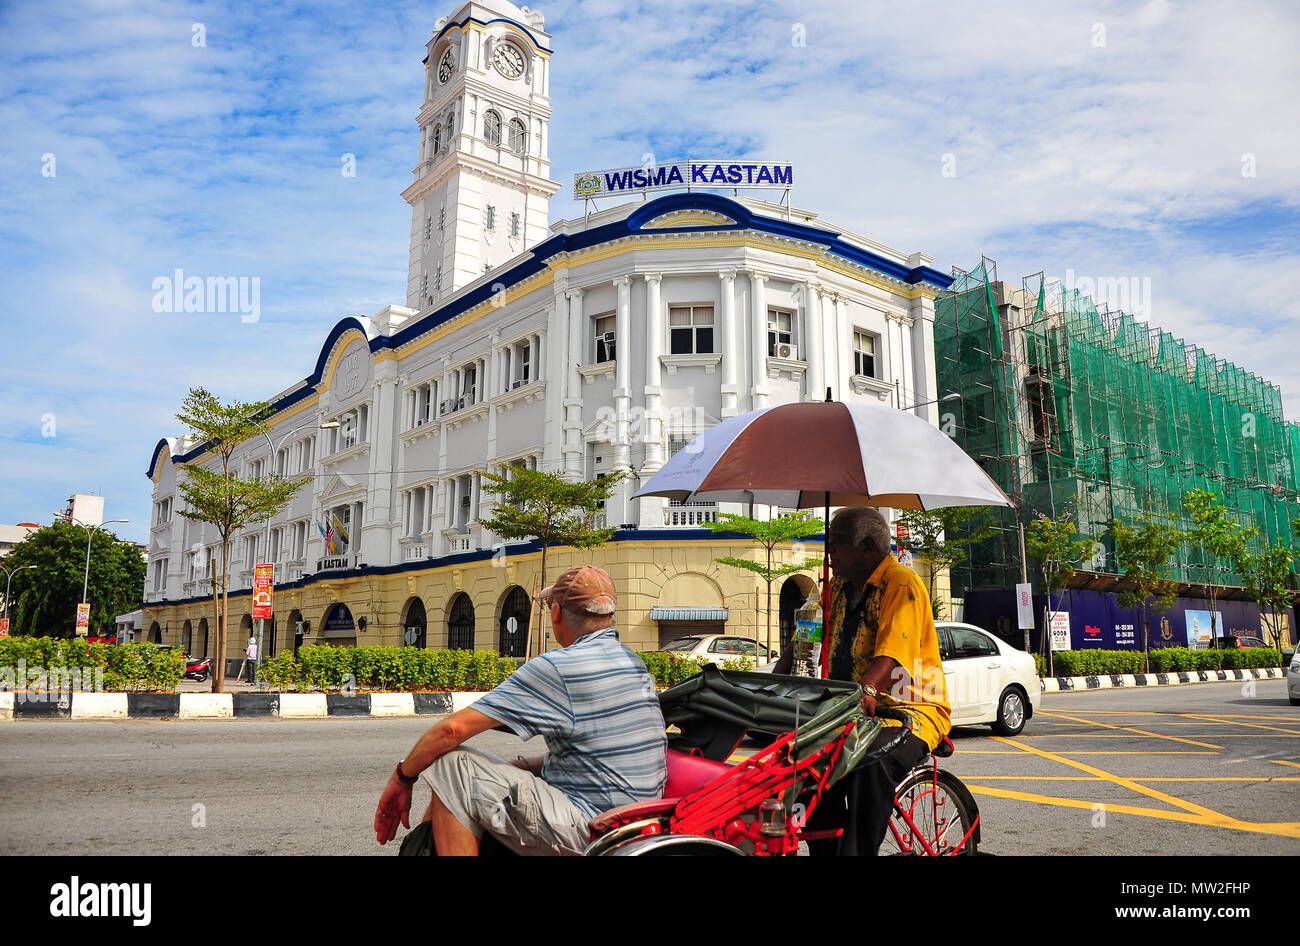 A tourist in a trishaw views the Wisma Kastam (Malayan Railway Building), part of Penang's heritage area. Never a railway station but Customs Offices - Stock Image